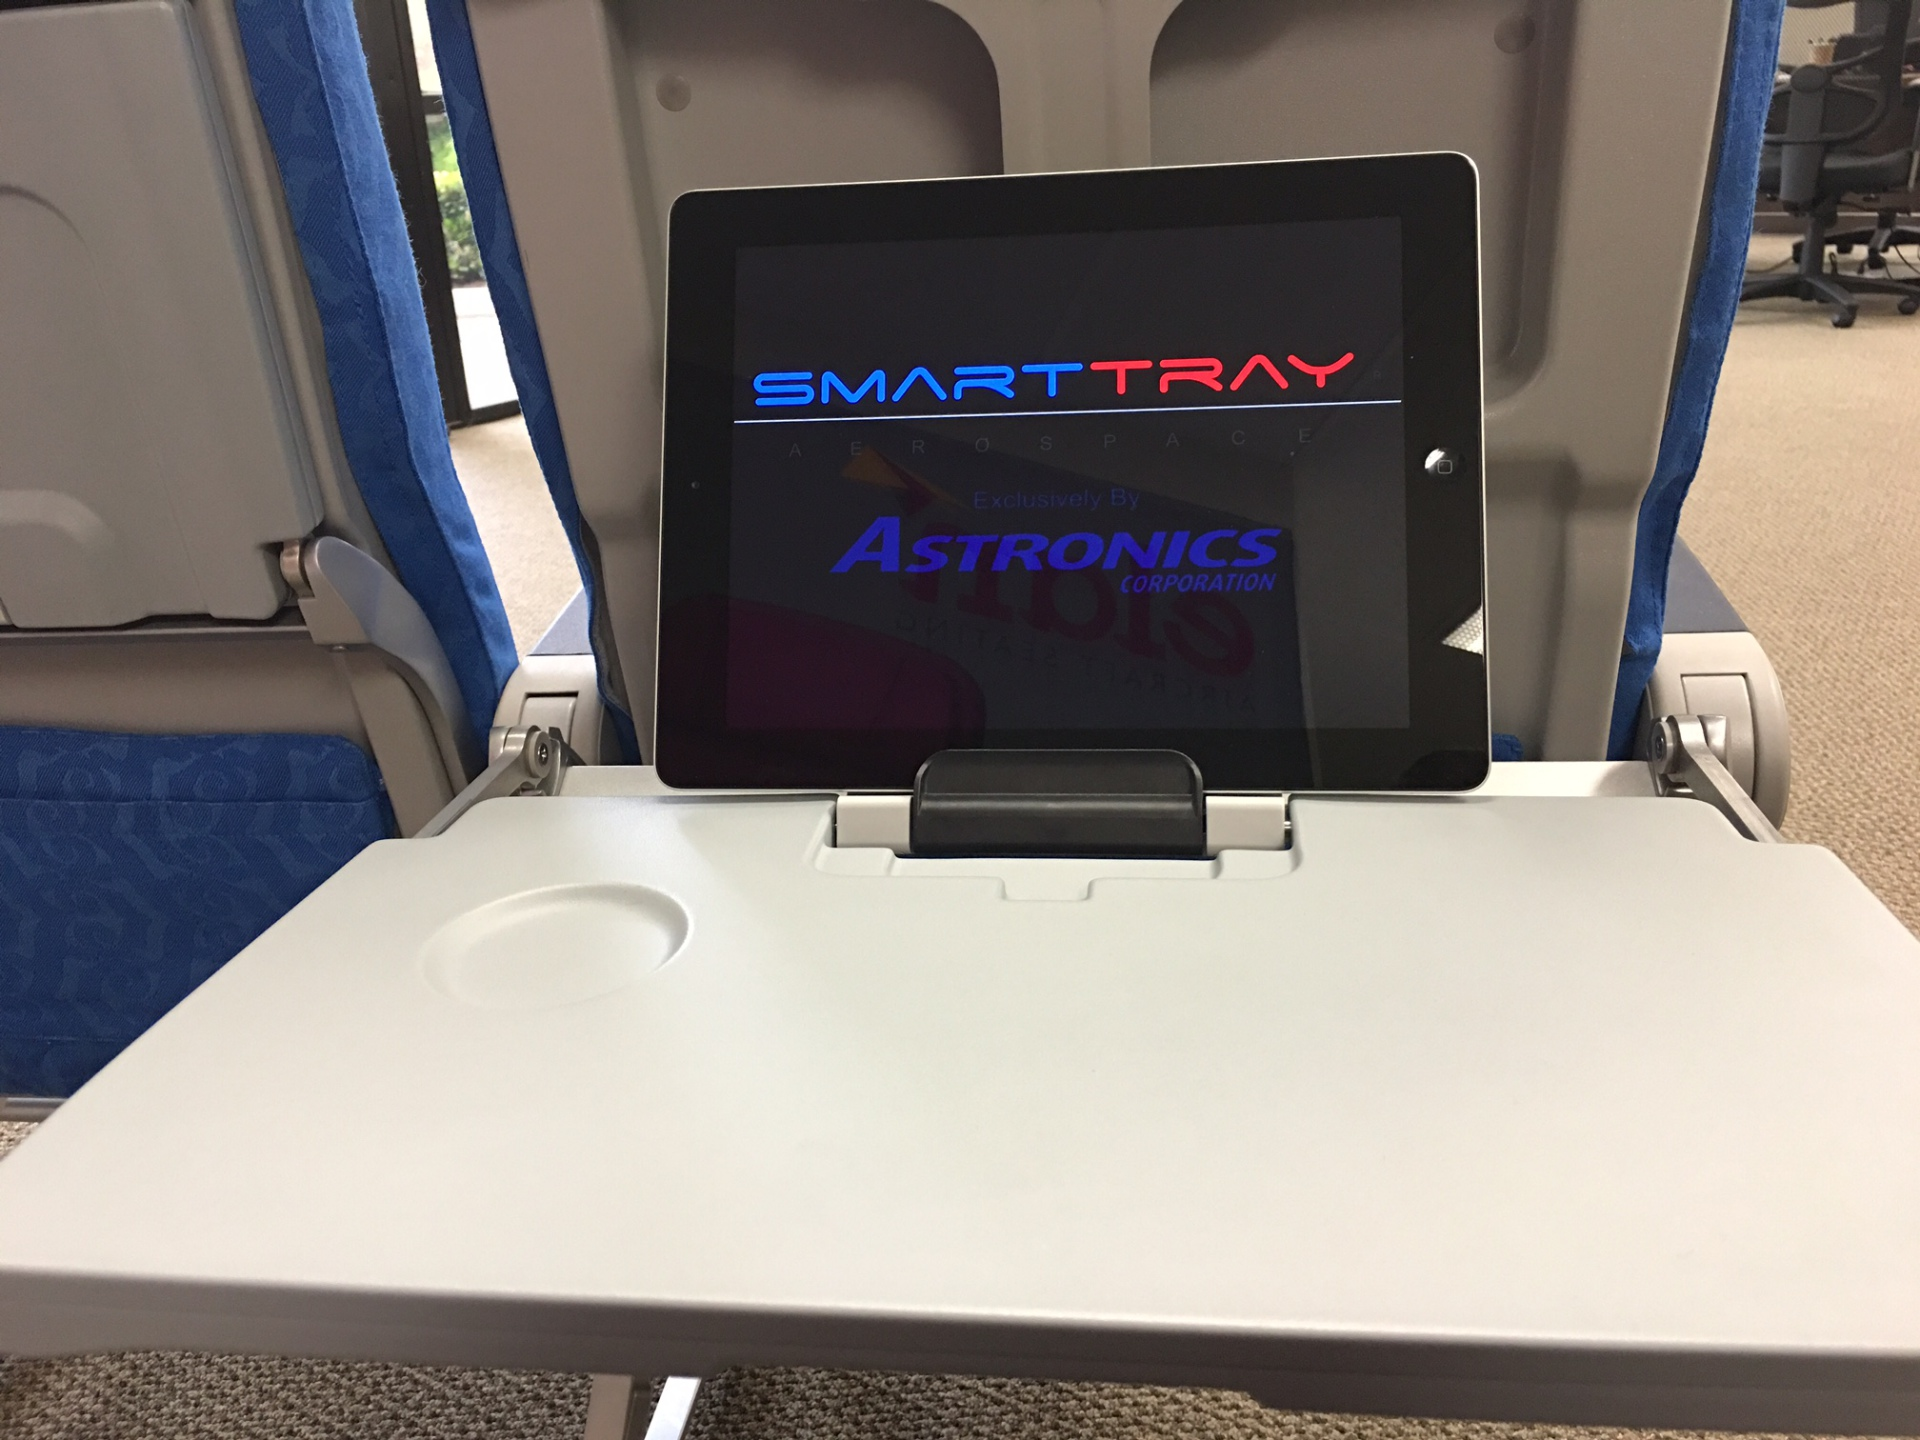 The Smart Tray and Elan